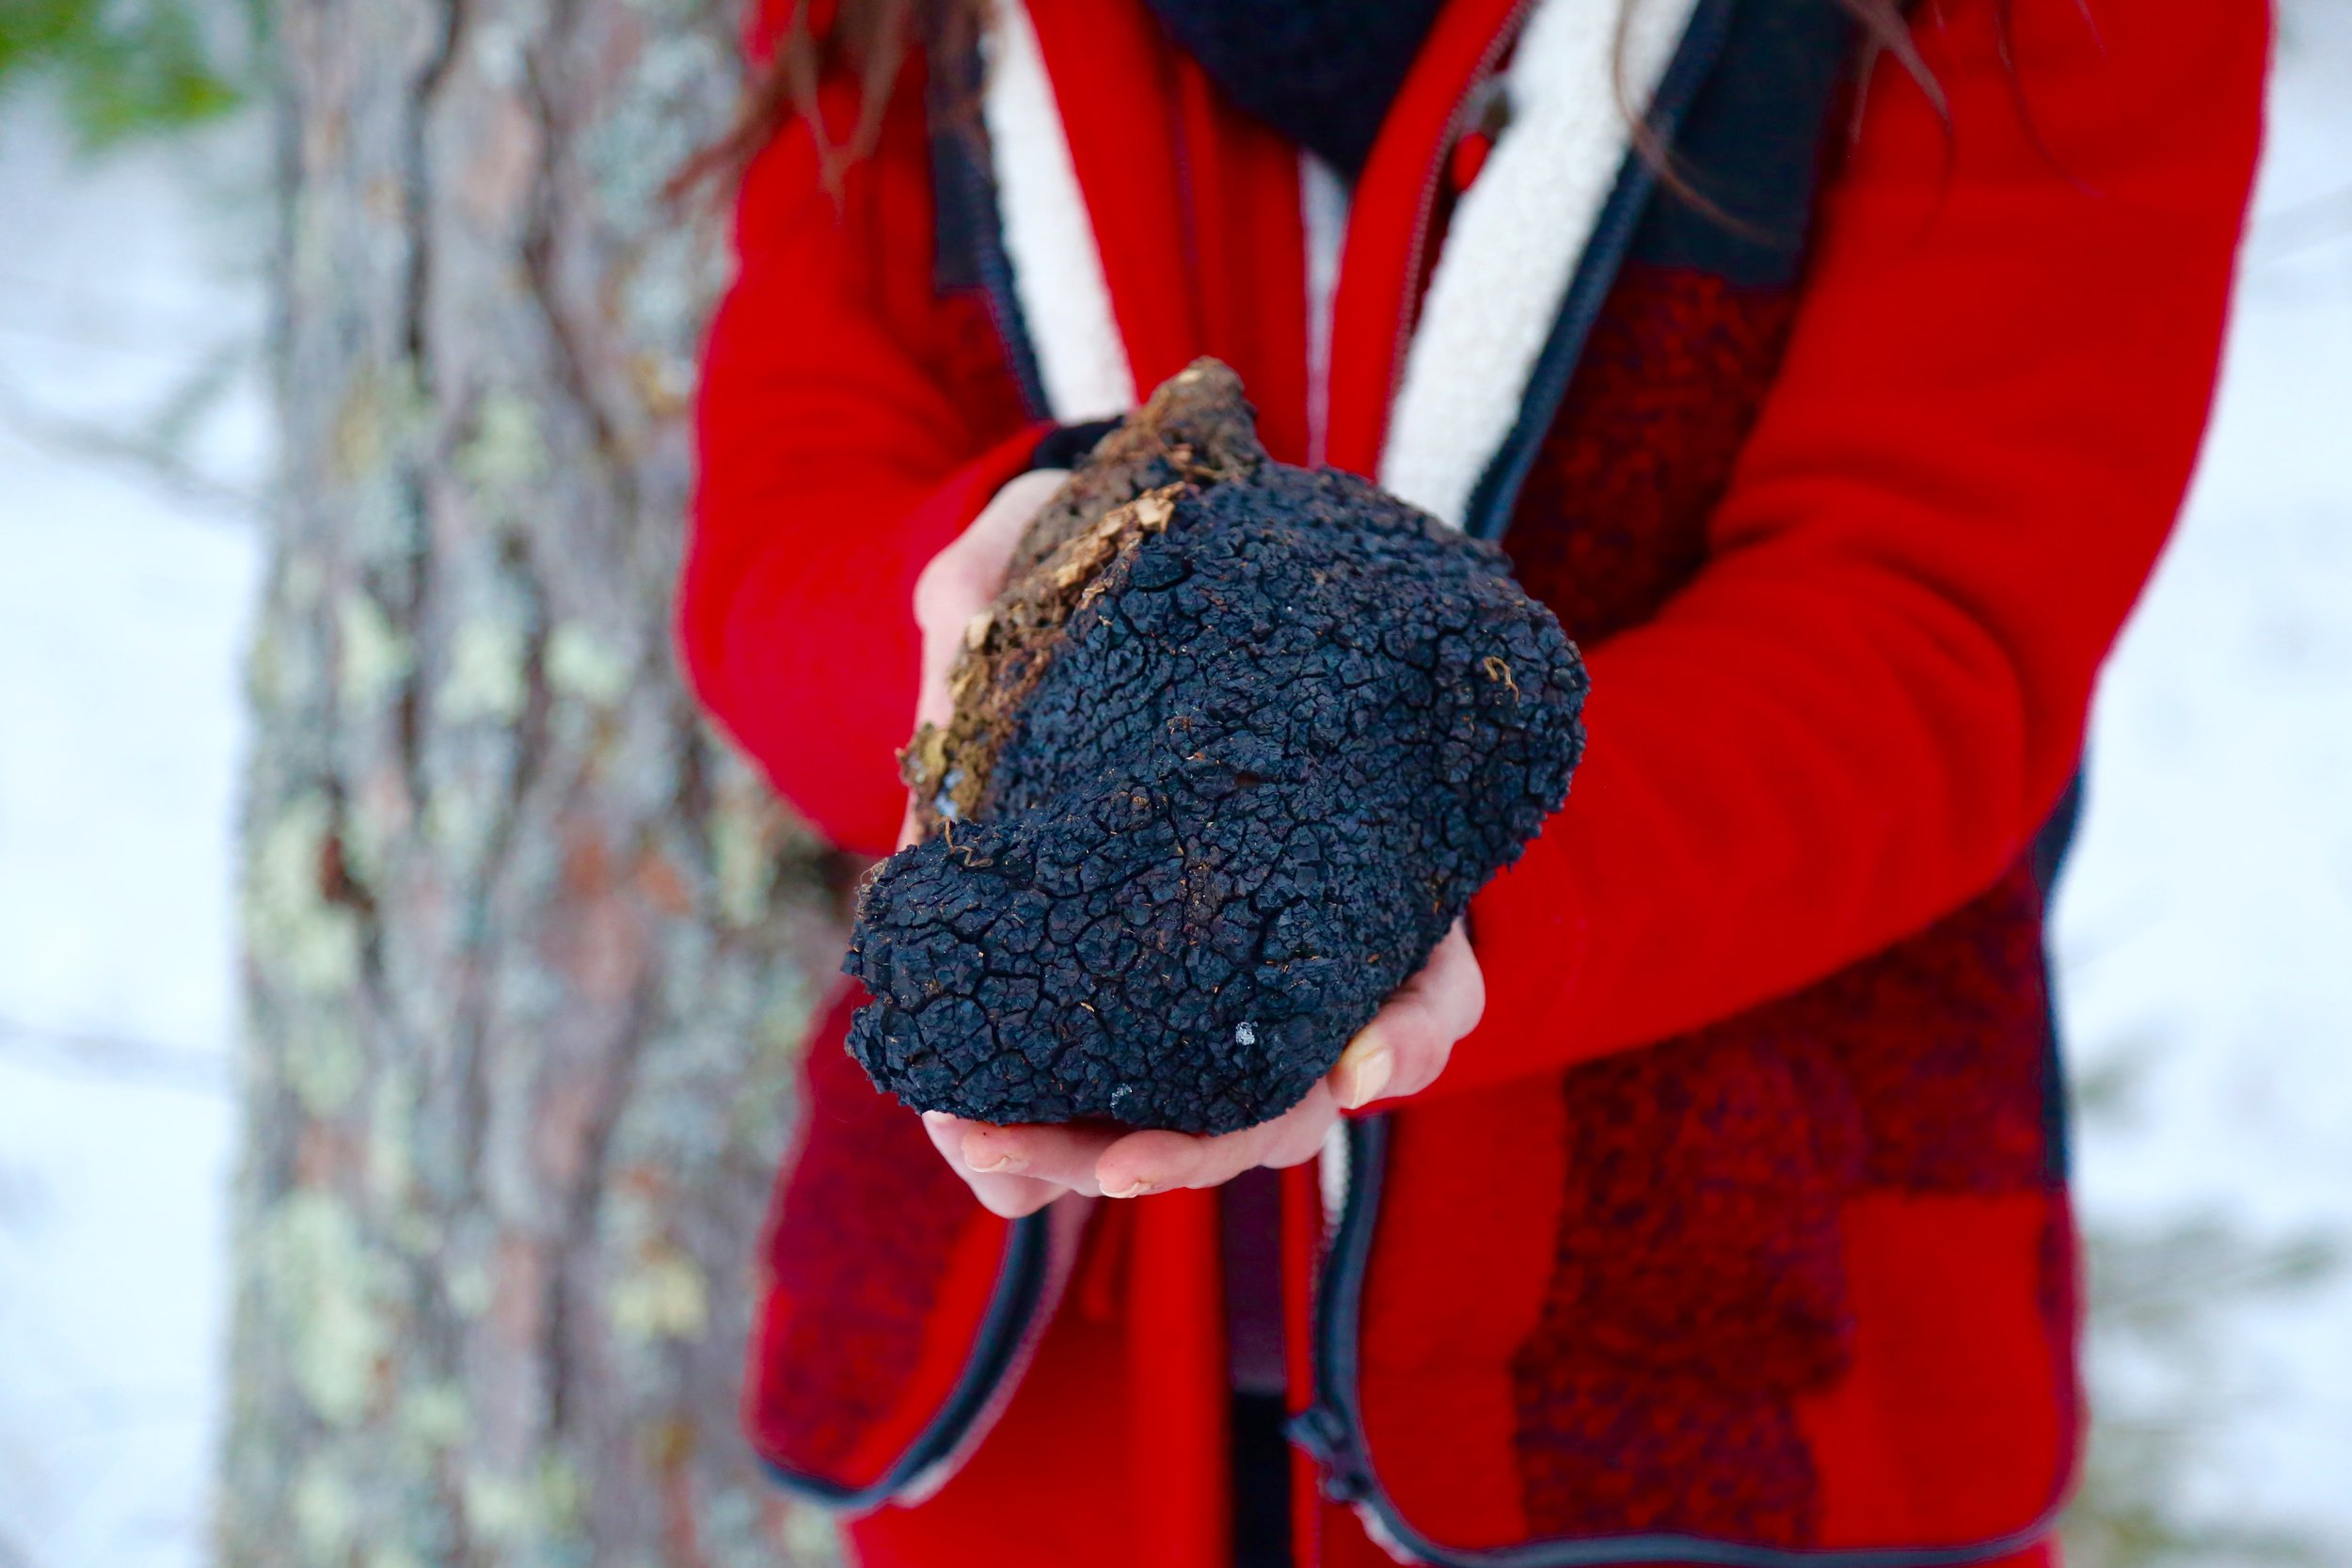 Chaga Mushroom harvested in Northern Minnesota